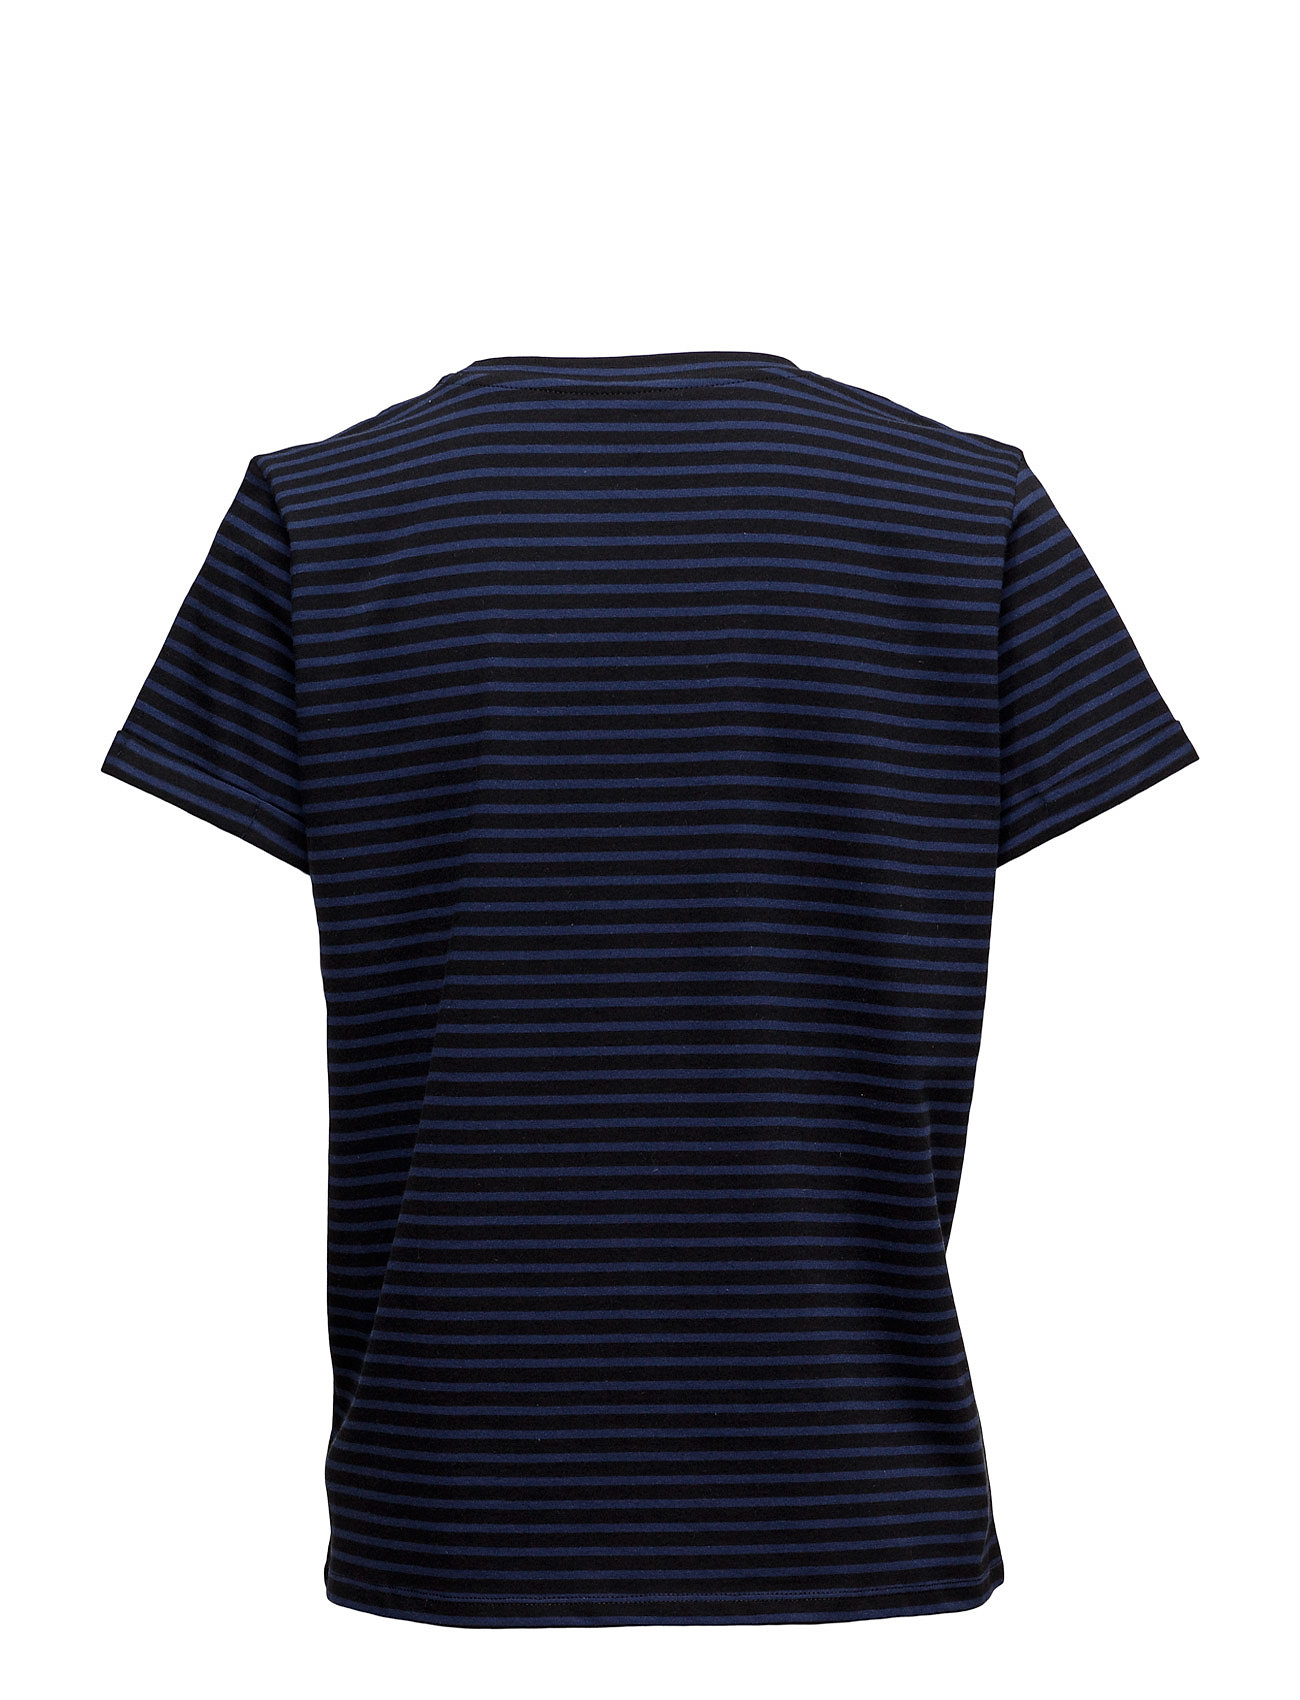 Striped Love Tee Black Lee Jeans Kortærmede til Damer i Sort